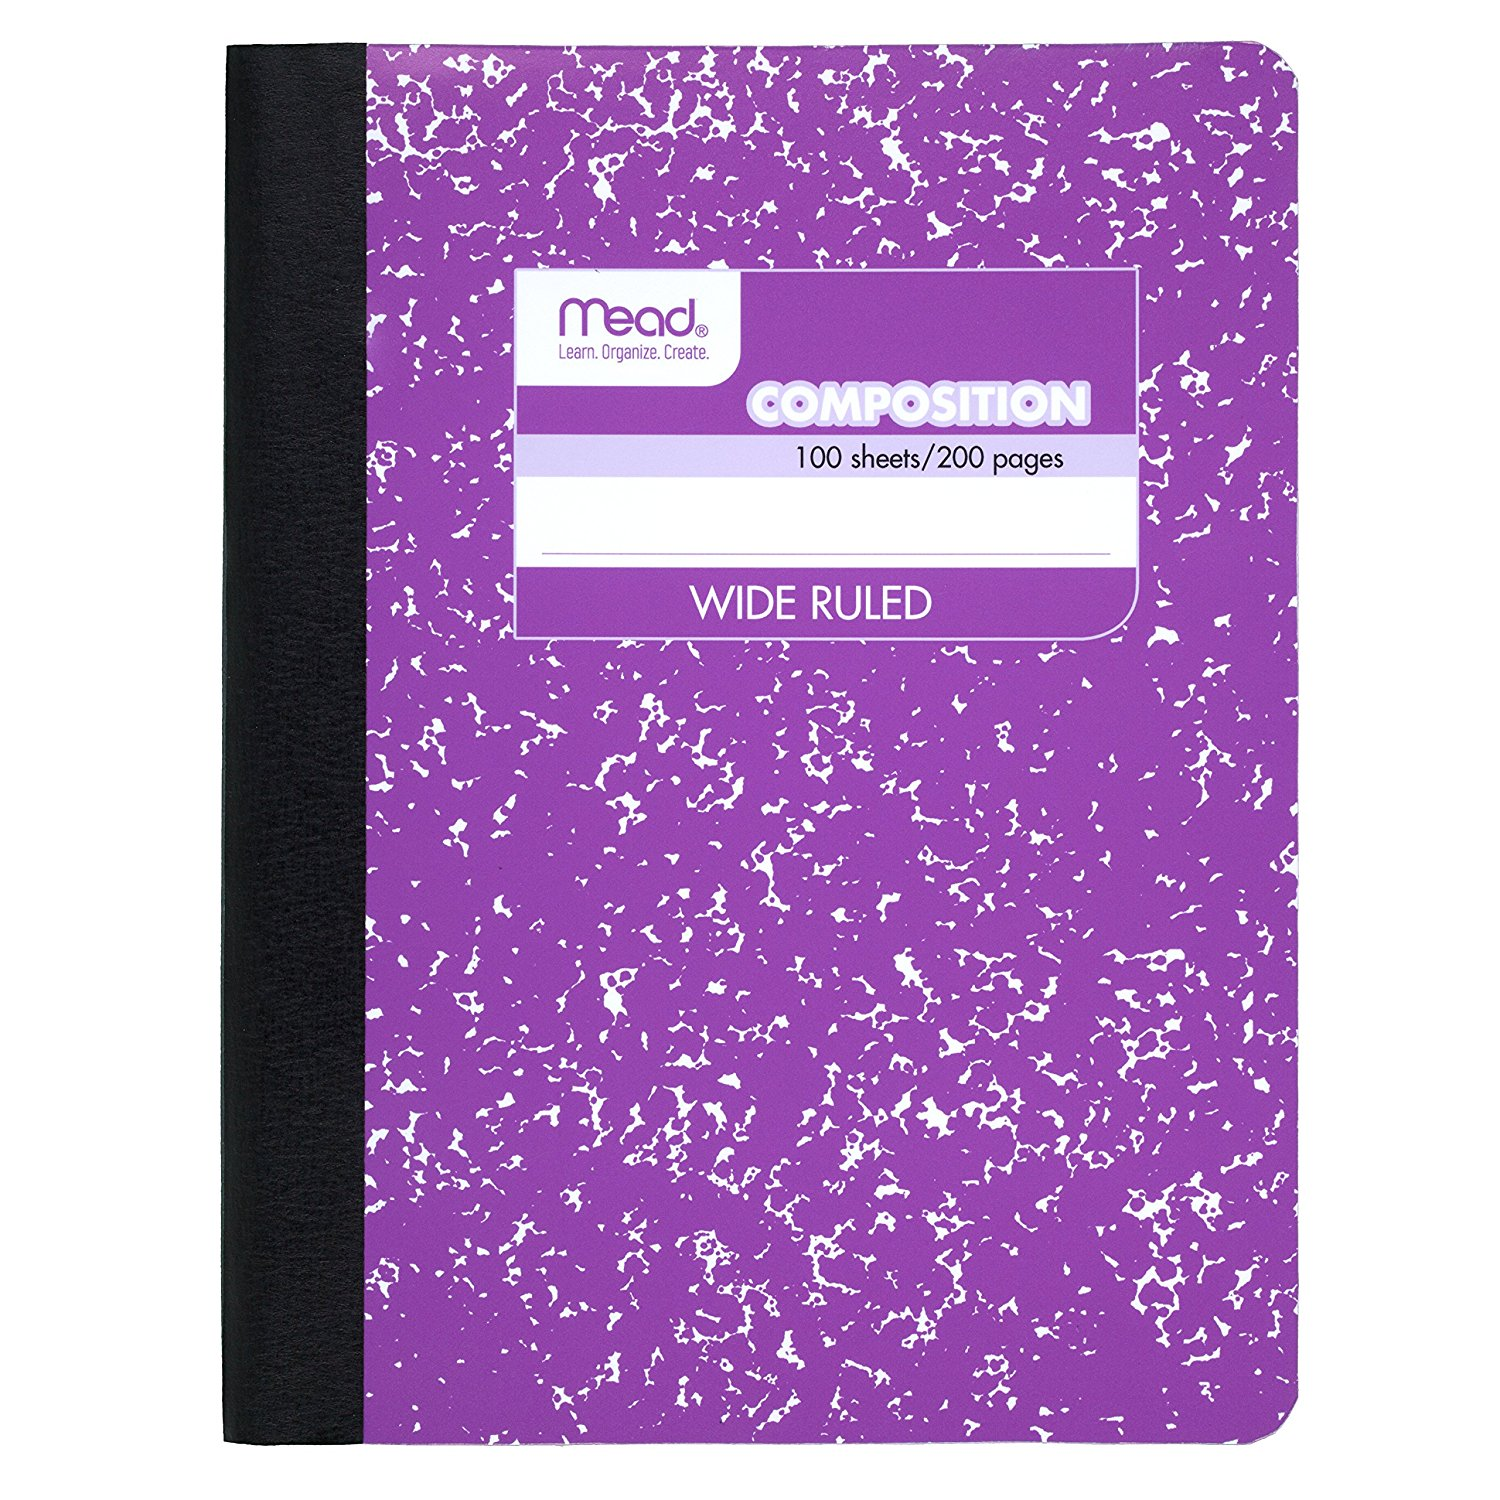 """Mead Composition Notebook, Wide Ruled, 100 Sheets (200 Pages), 9-3/4"""" x 7-1/2"""""""